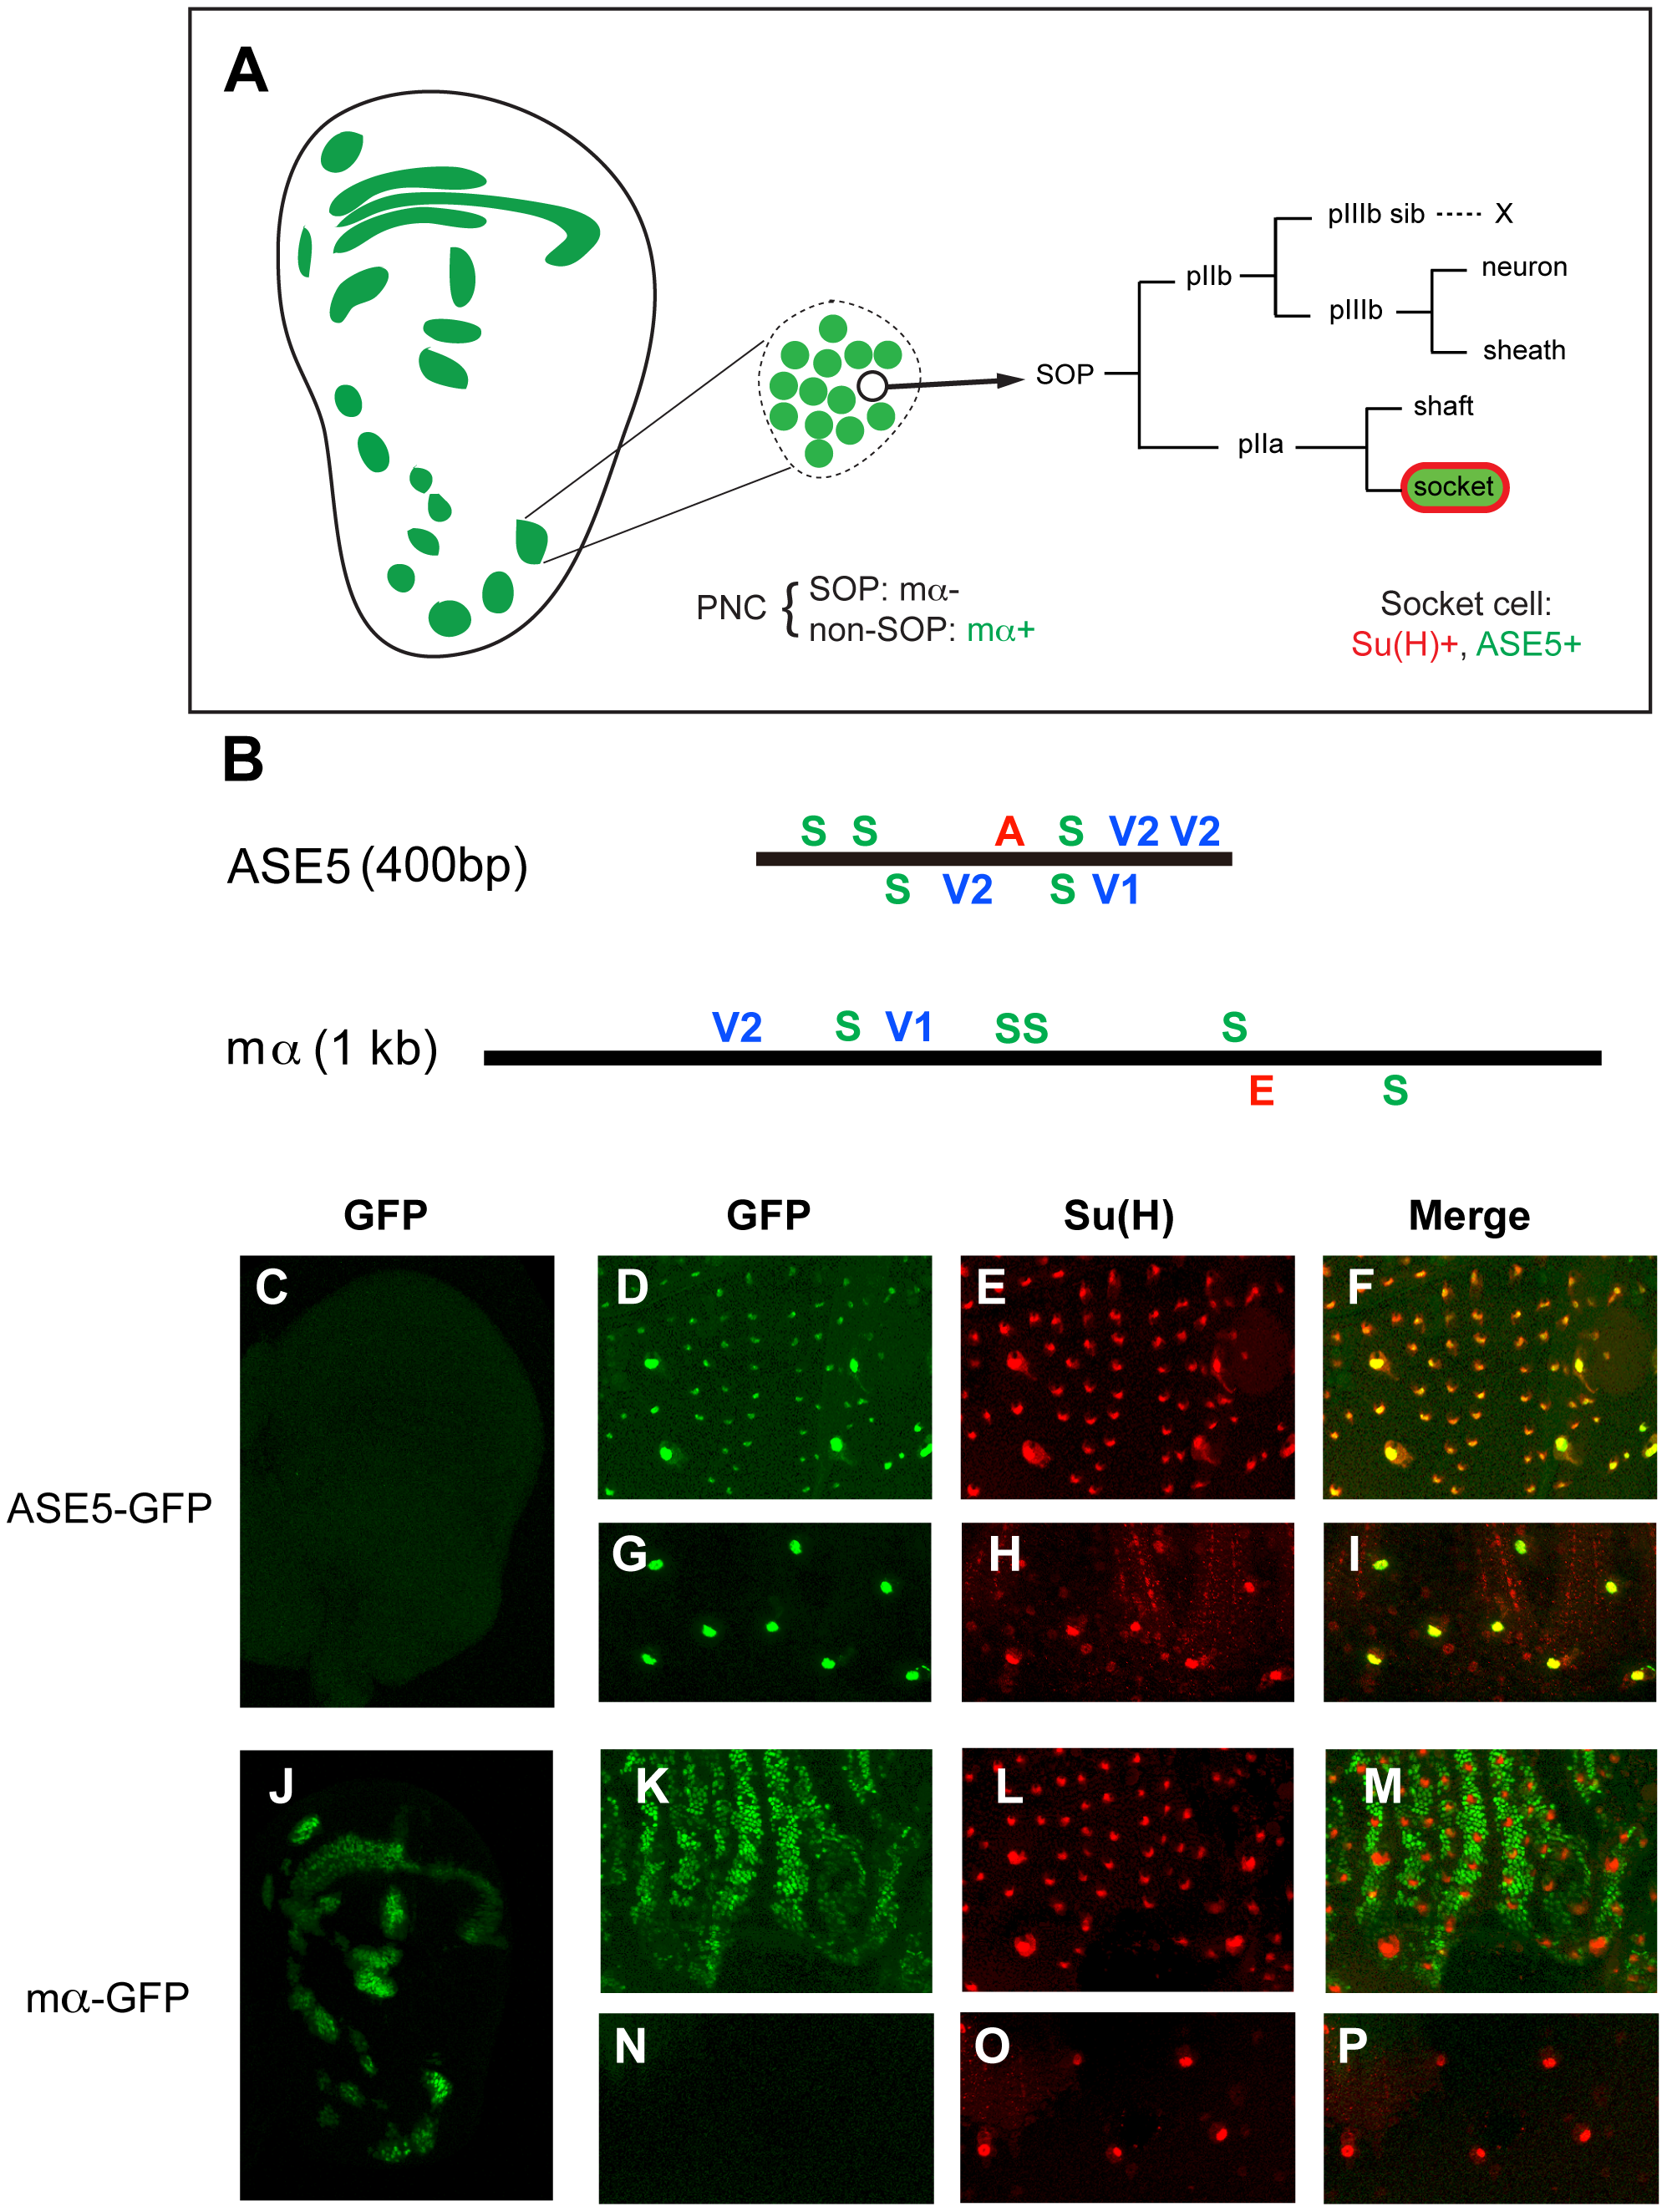 ASE5 and the mα enhancer are active in distinct cell types in development.